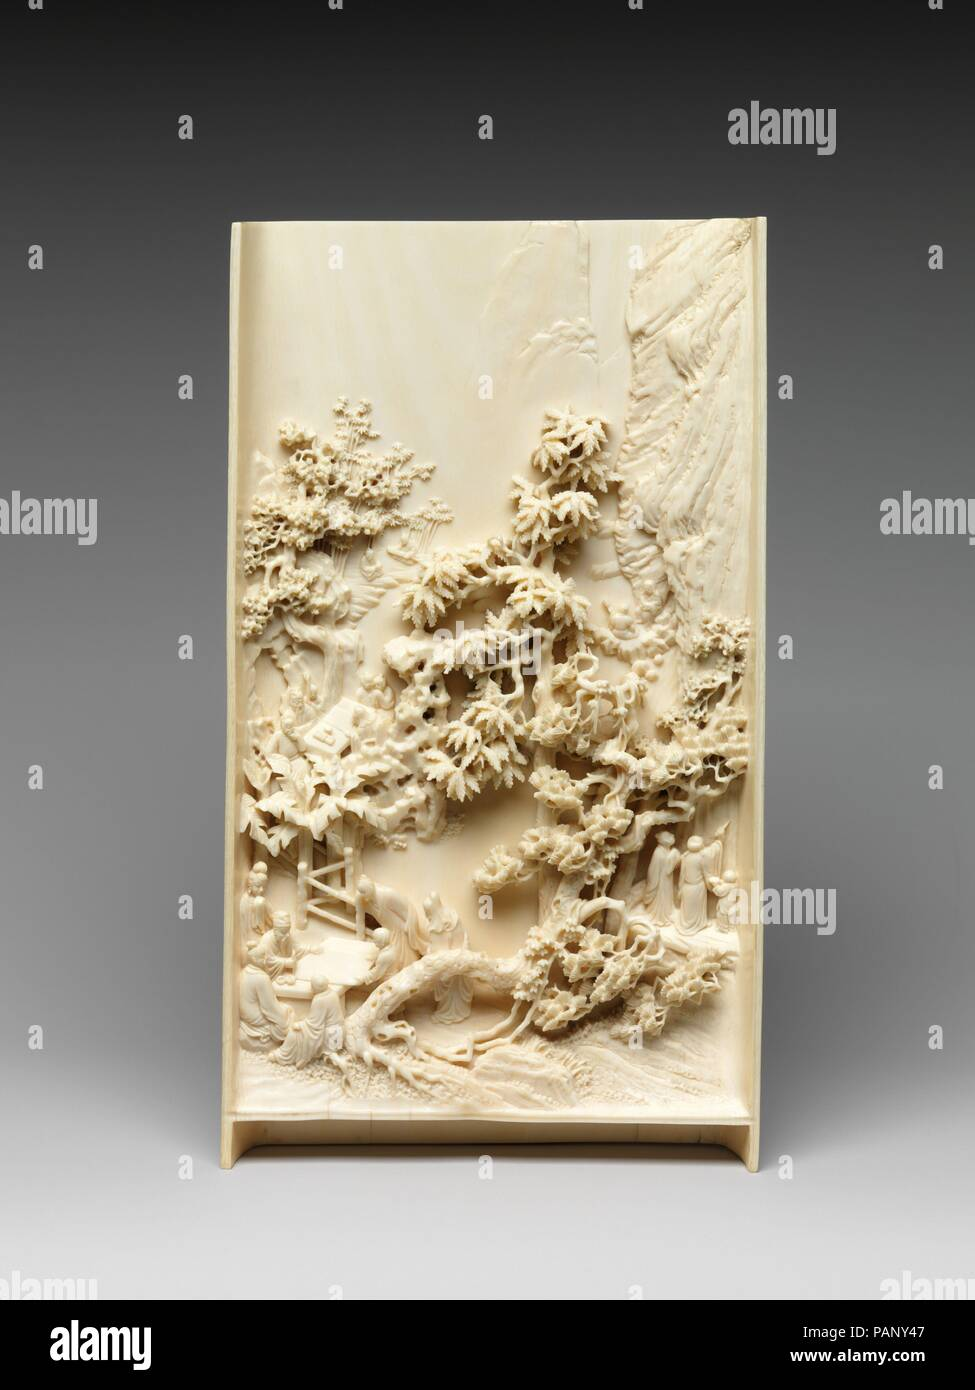 Table screen with figures in a landscape. Culture: China. Dimensions: H. 11 1/8 in. (28.3 cm); W. 6 3/8 in. (16.2 cm); D. 1 1/16 in. (2.7 cm). Date: 18th century.  Three sets of figures are nestled in the towering mountains on this screen, which would have been displayed in a scholar's studio. The two groups at left are shown huddled around a table on which an individual writes or paints. At right, a figure appears to be writing or carving on the wall of a cliff, a common practice in such literati gatherings. Museum: Metropolitan Museum of Art, New York, USA. - Stock Image